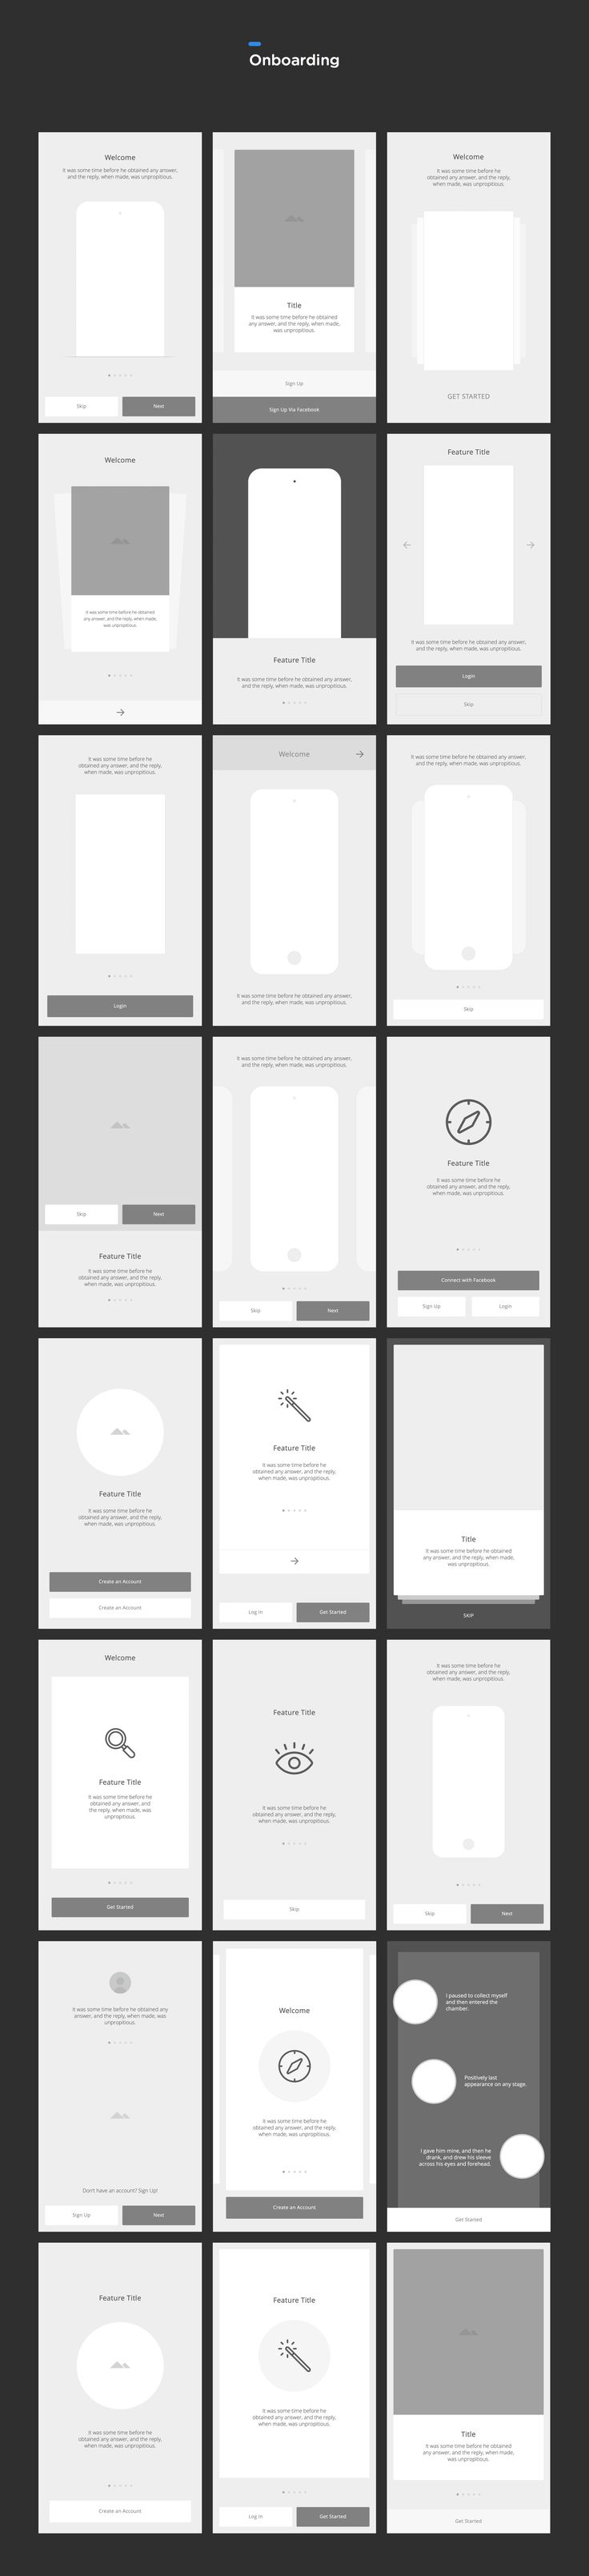 A consistent and meticulously organized set of vector-based wireframe components to quickly bring your iOS and Android app ideas to life. Think of it as your wireframing workflow, on steroids.